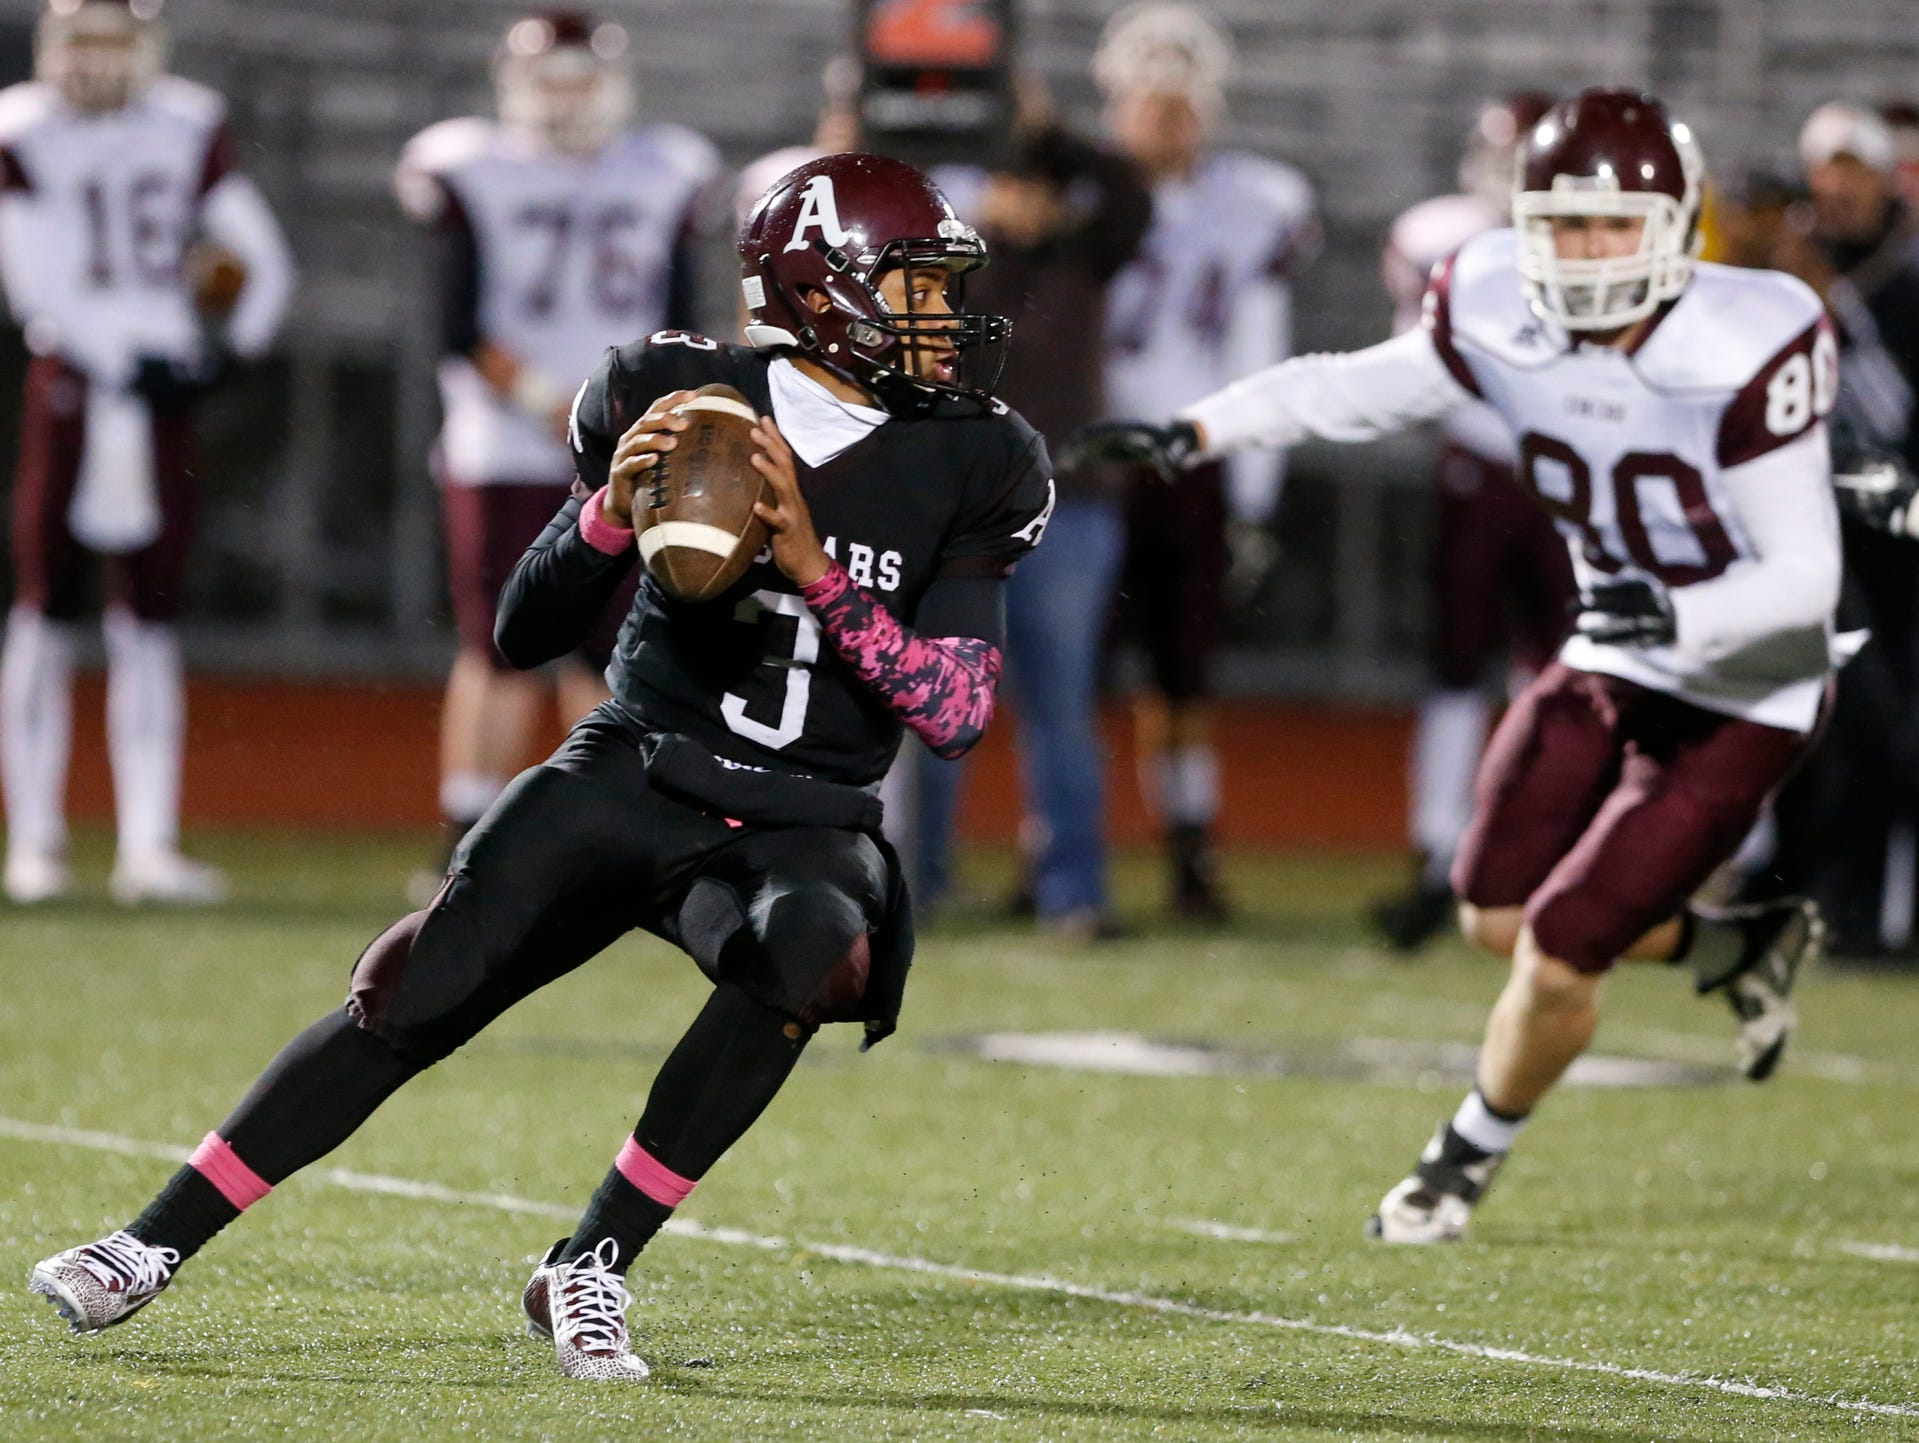 Senior QB Kenyon Yellowdy (3) returns to guide what could be an explosive offense at Appoquinimink.